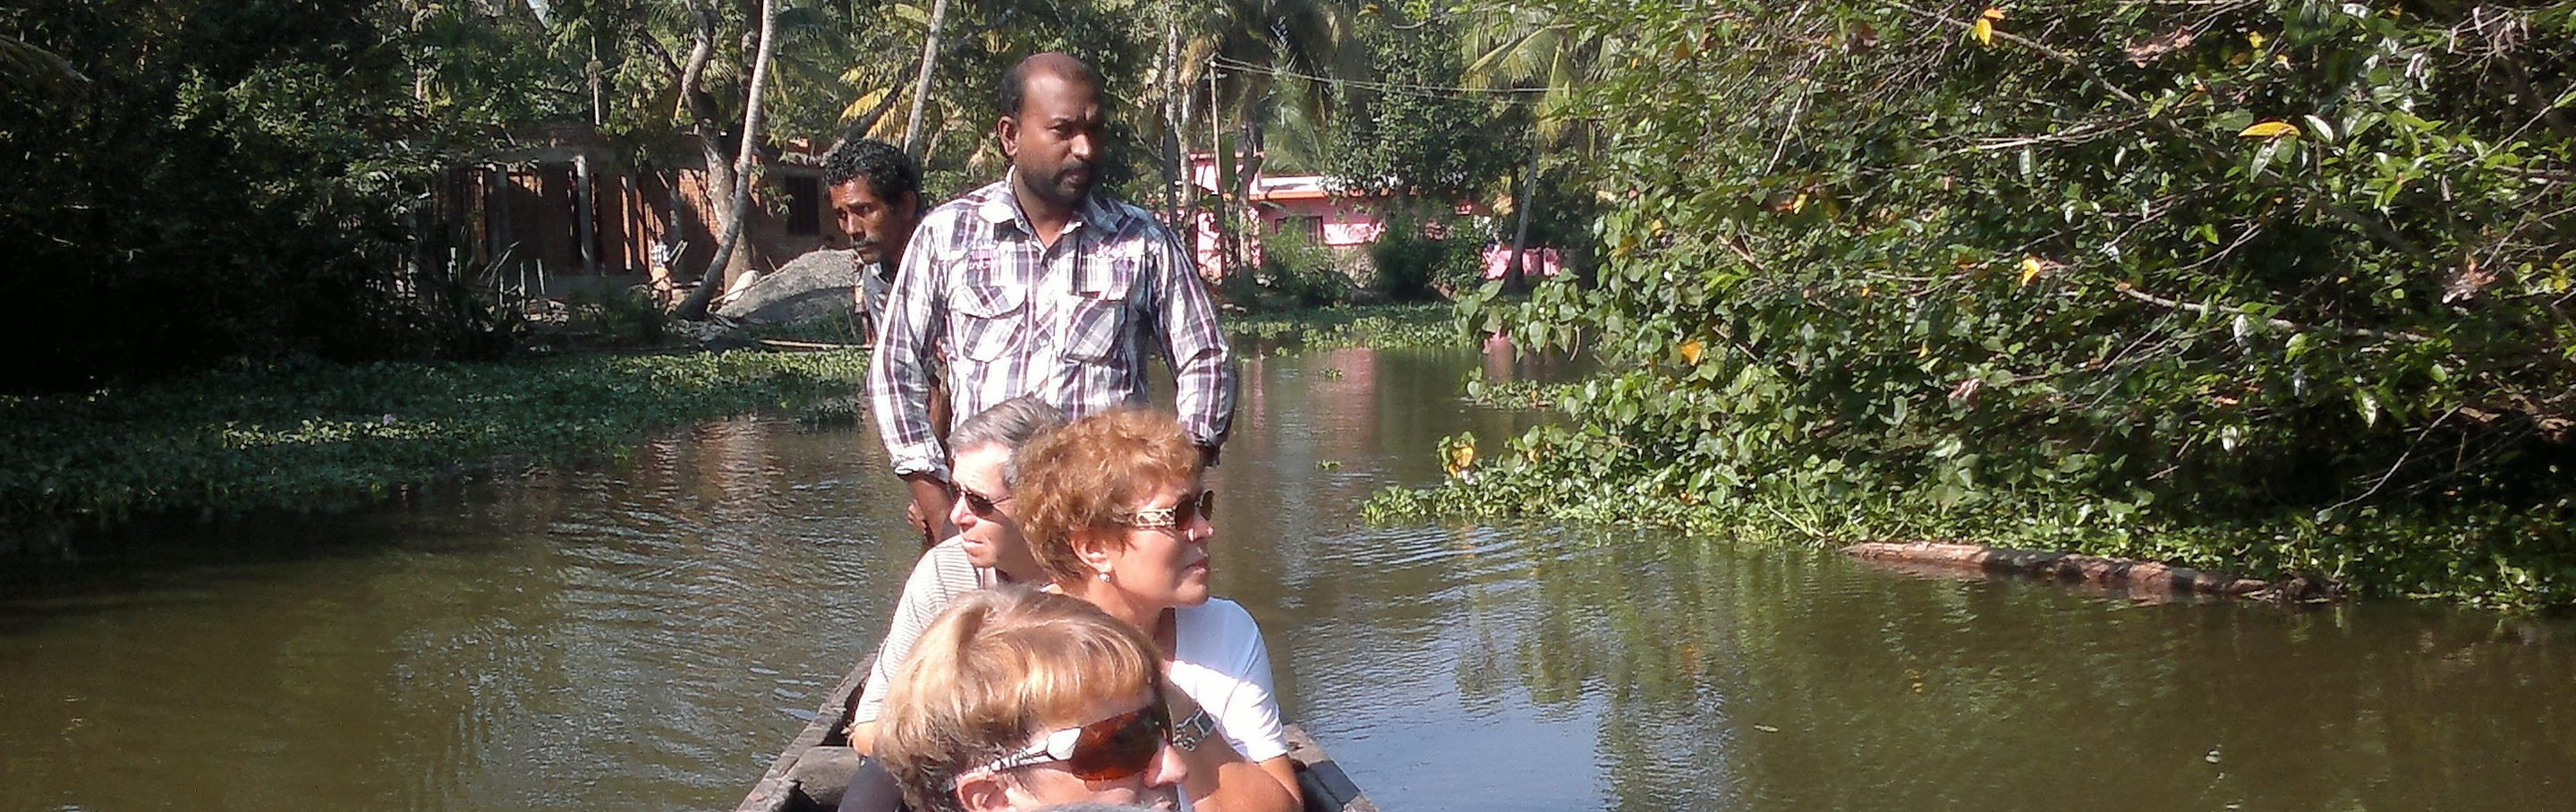 canal cruise backwater in Kerala